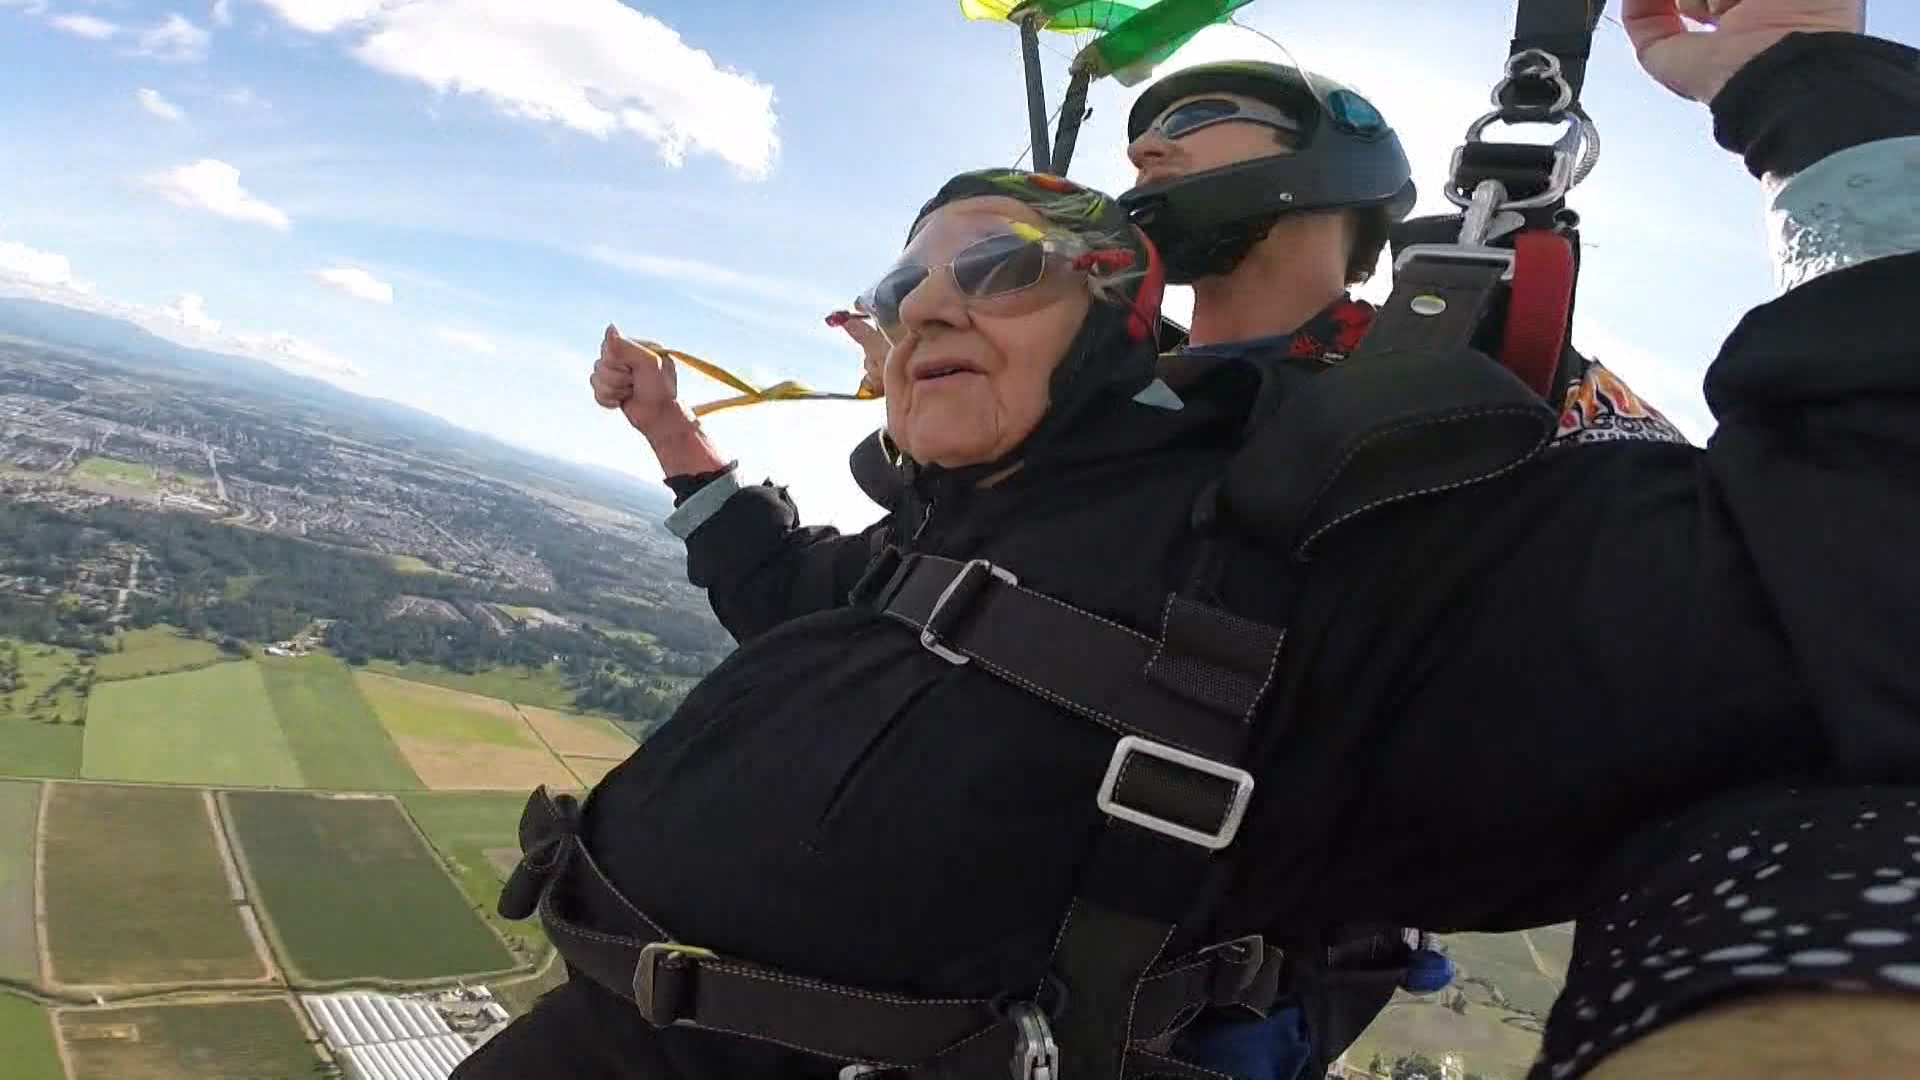 Age is just a number': Elderly Abbotsford residents skydive for